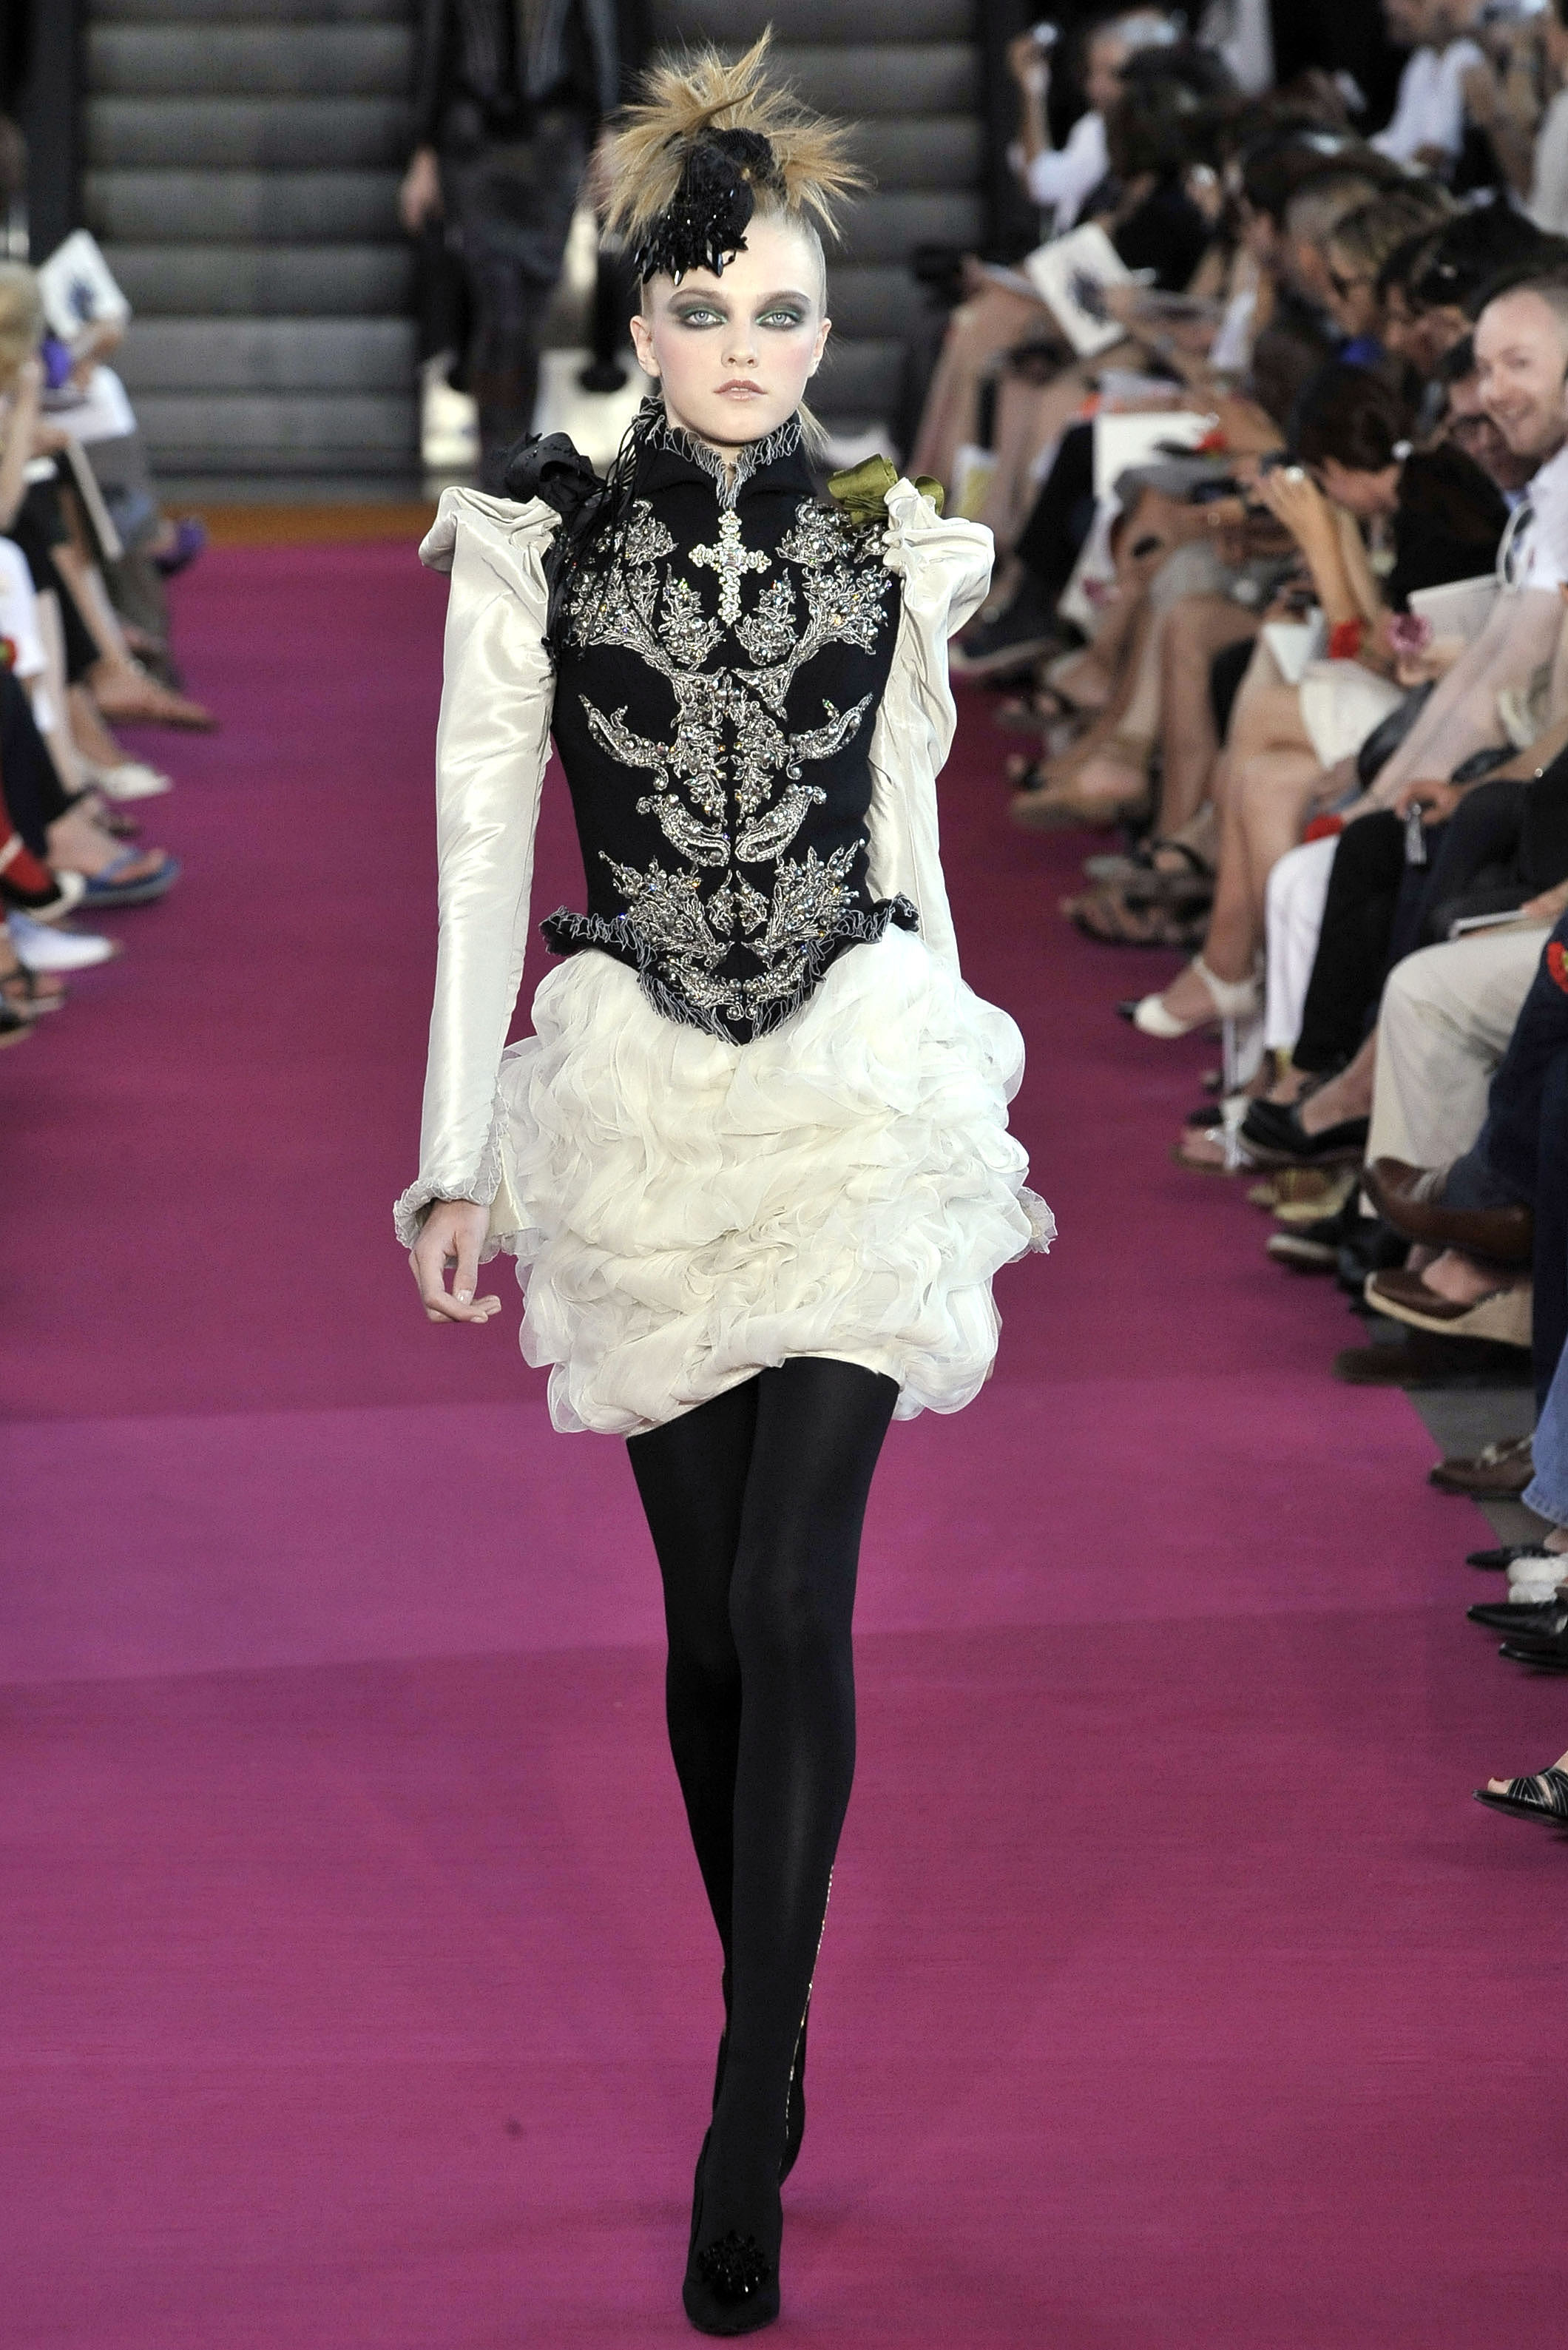 File:Christian Lacroix Fall 2008 Couture White Dress With Black Vest.jpg